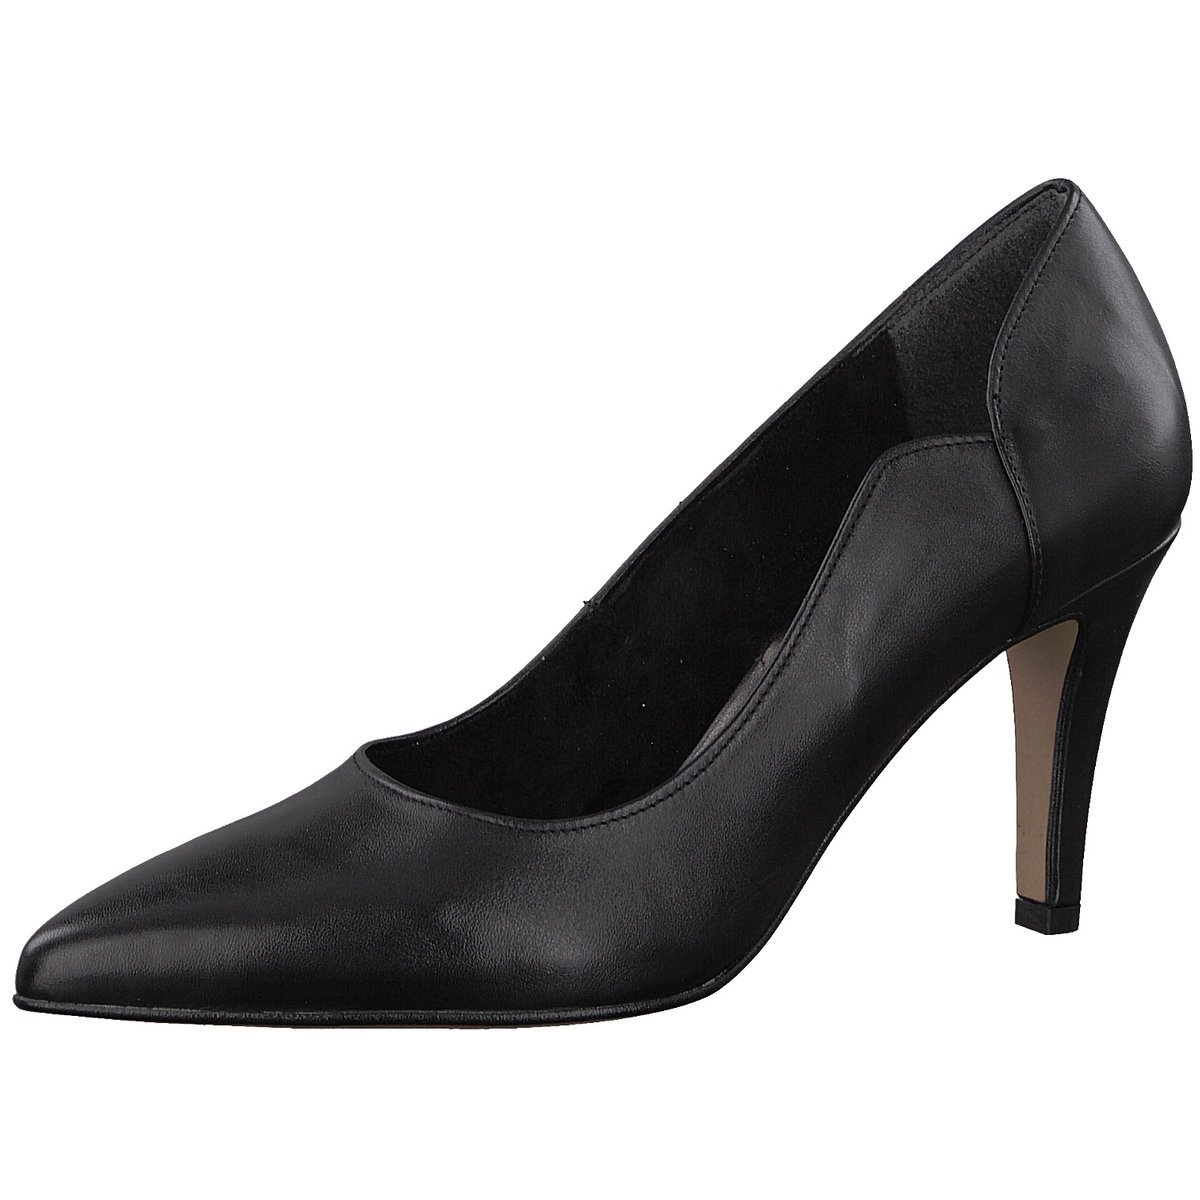 Details zu Tamaris Damen Pumps Woms Court Shoe 1 1 22472 20003 schwarz 400463